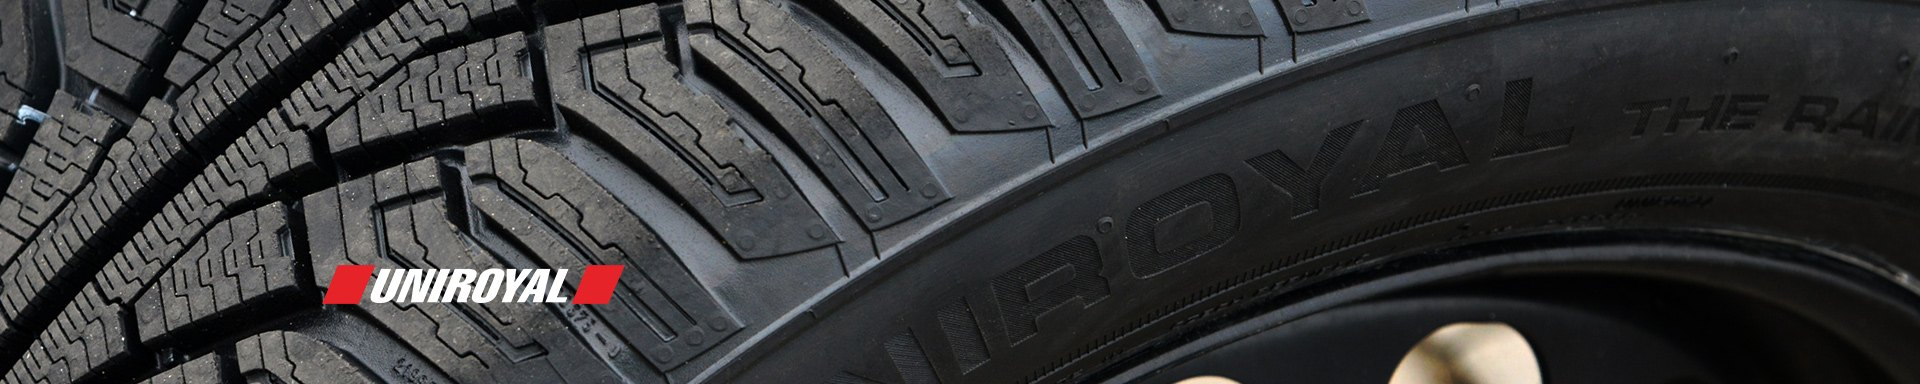 Universal UNIROYAL TIRES